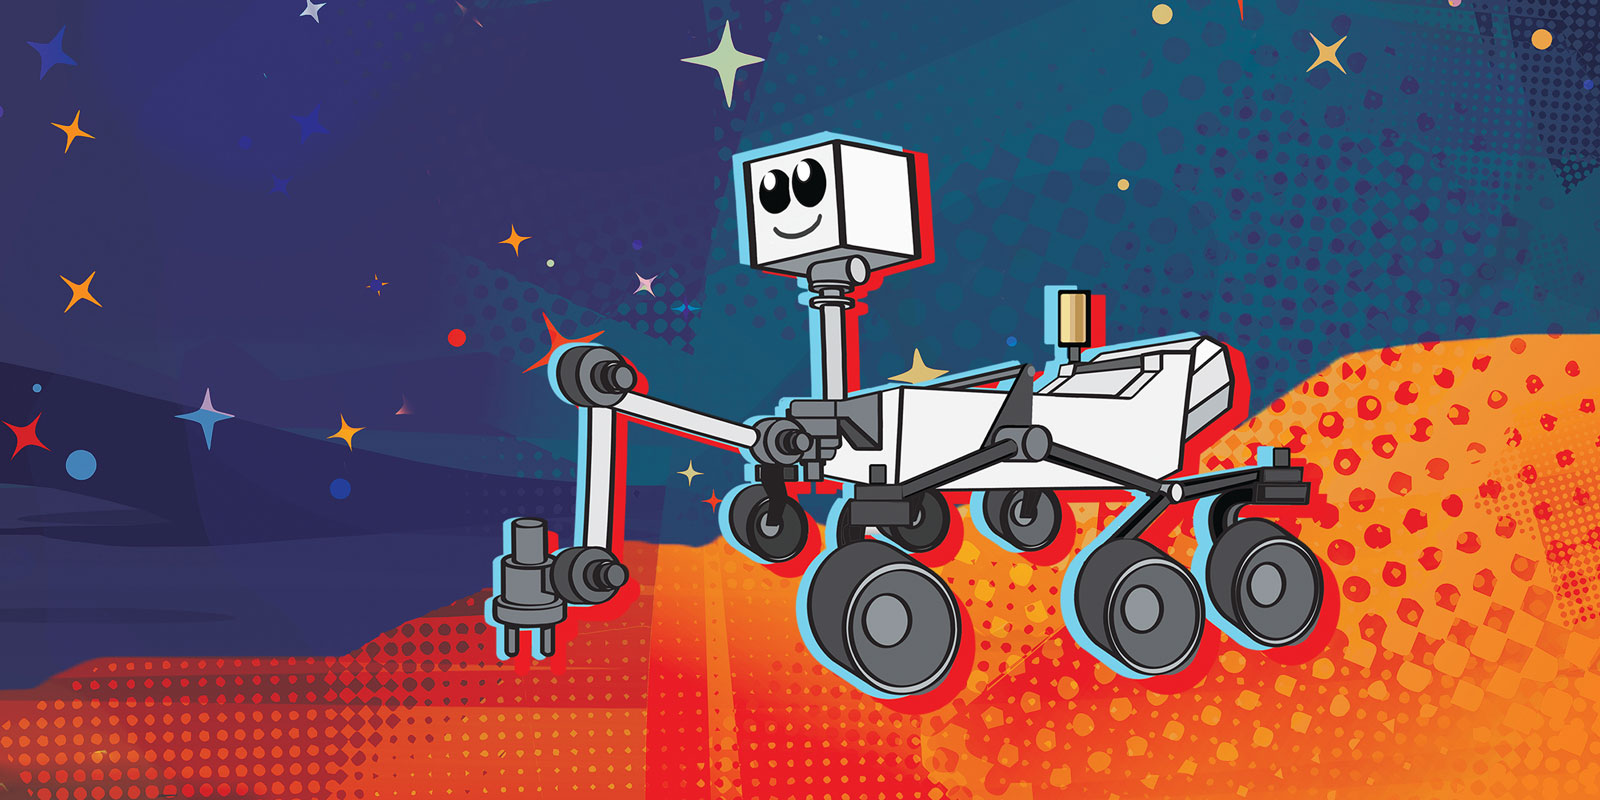 NASA is encouraging school children to suggest a name for the next Mars rover. K-12 students can enter at NASA.gov (photo courtesy of NASA.gov)